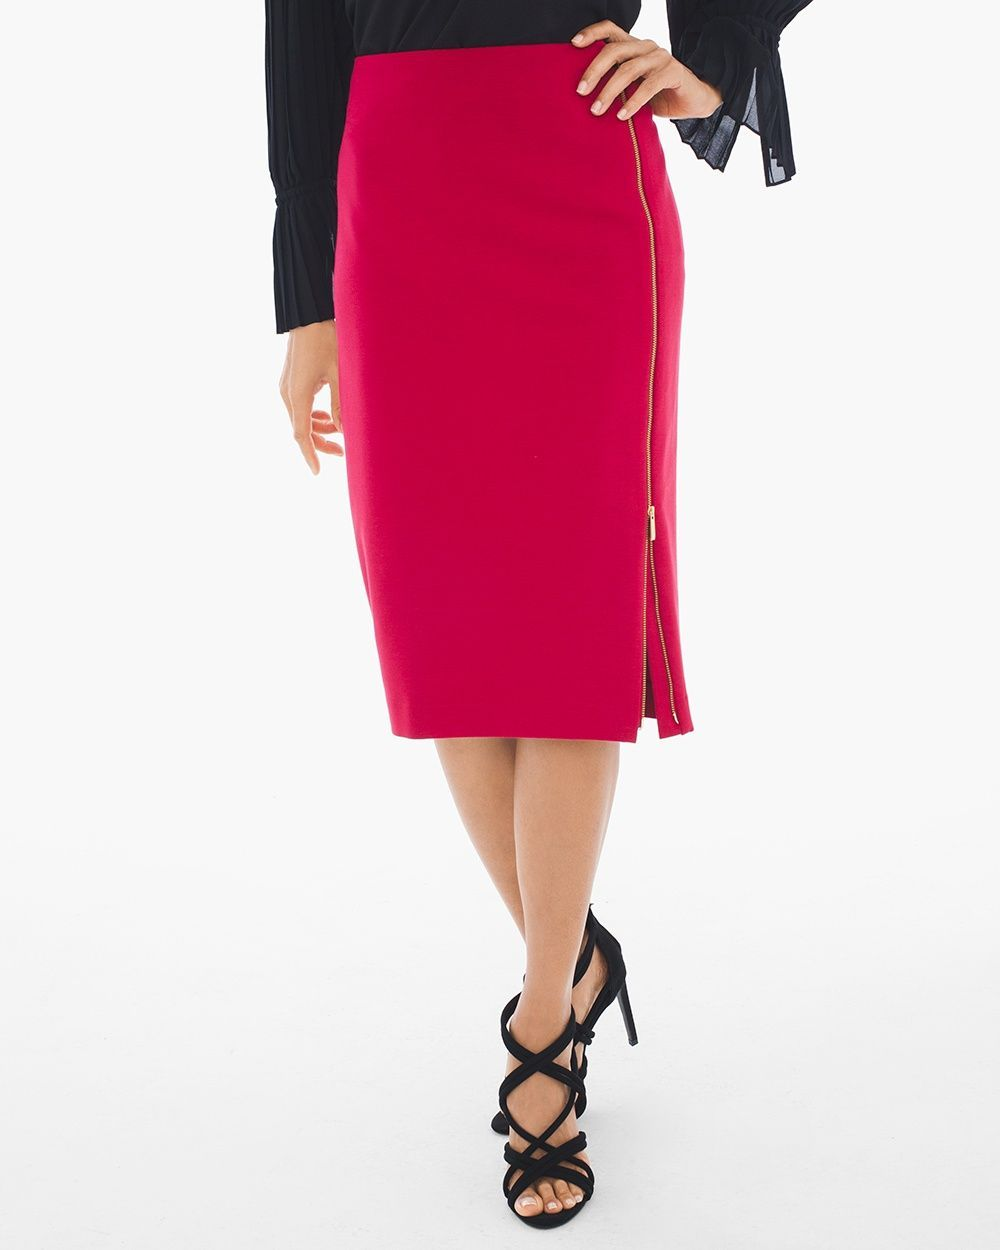 c62c78979db8 Chico s Women s Side-Zip Ponte Pencil Skirt